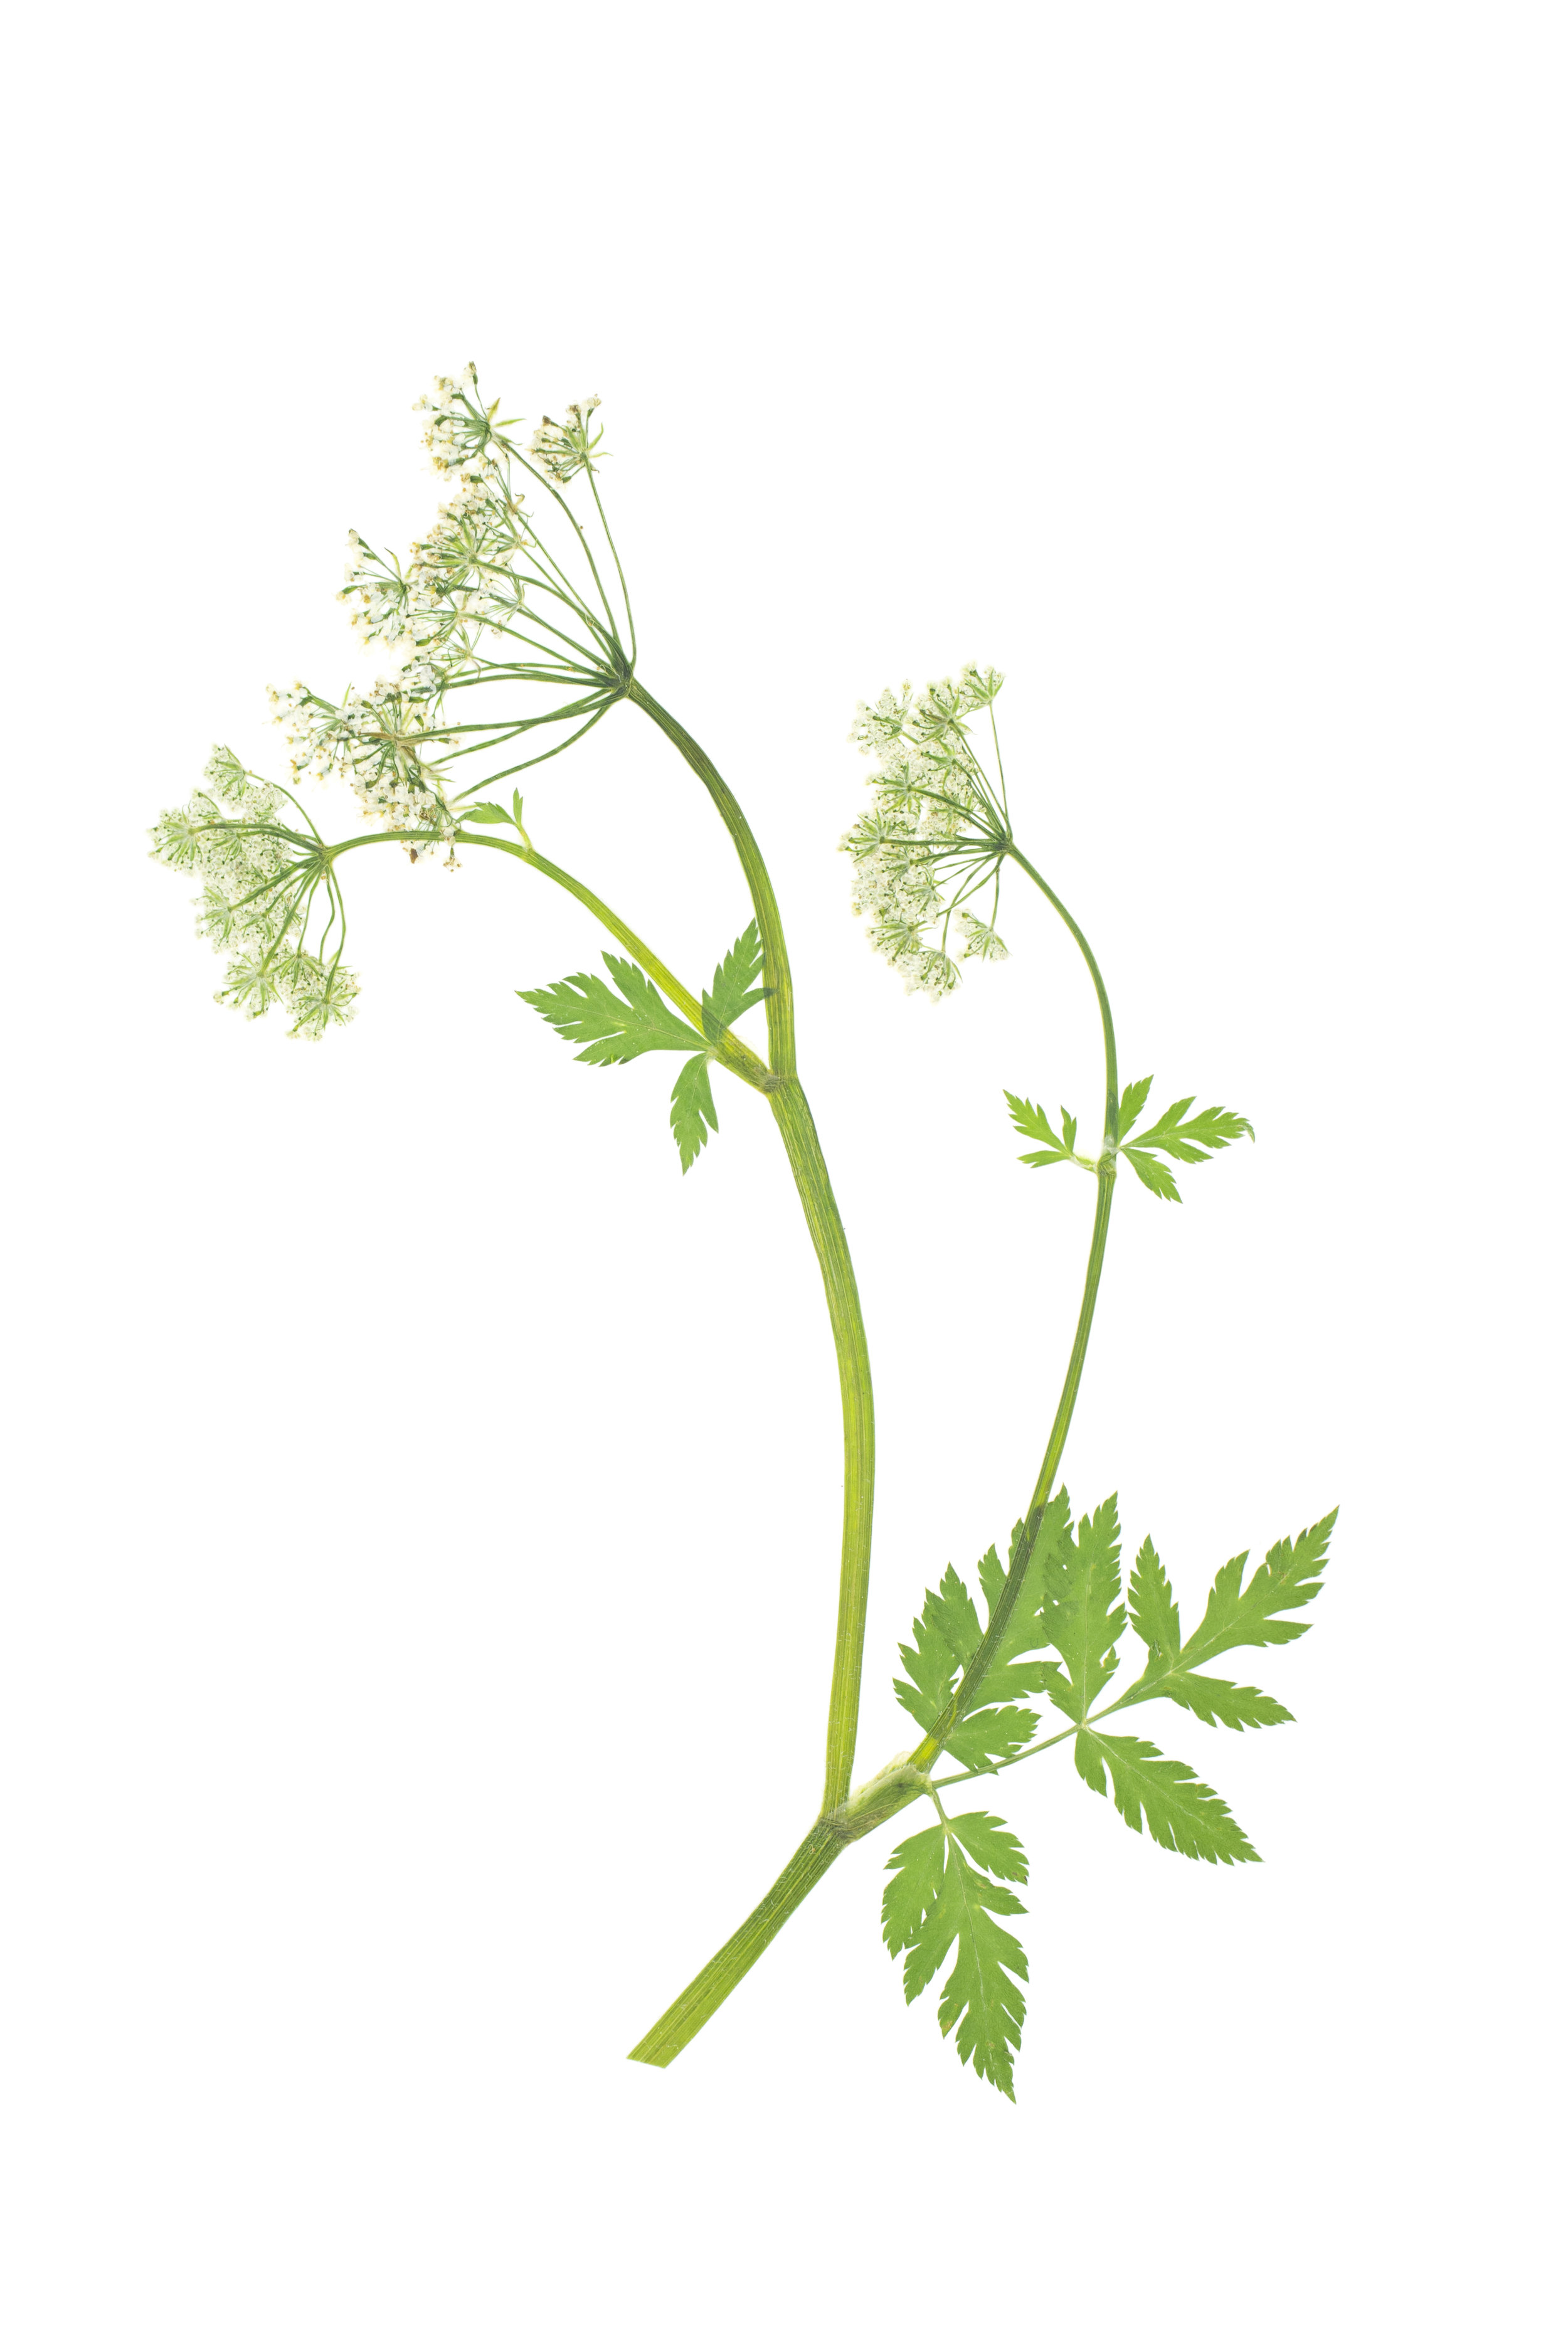 Glossy Chervil / Anthriscus nitida